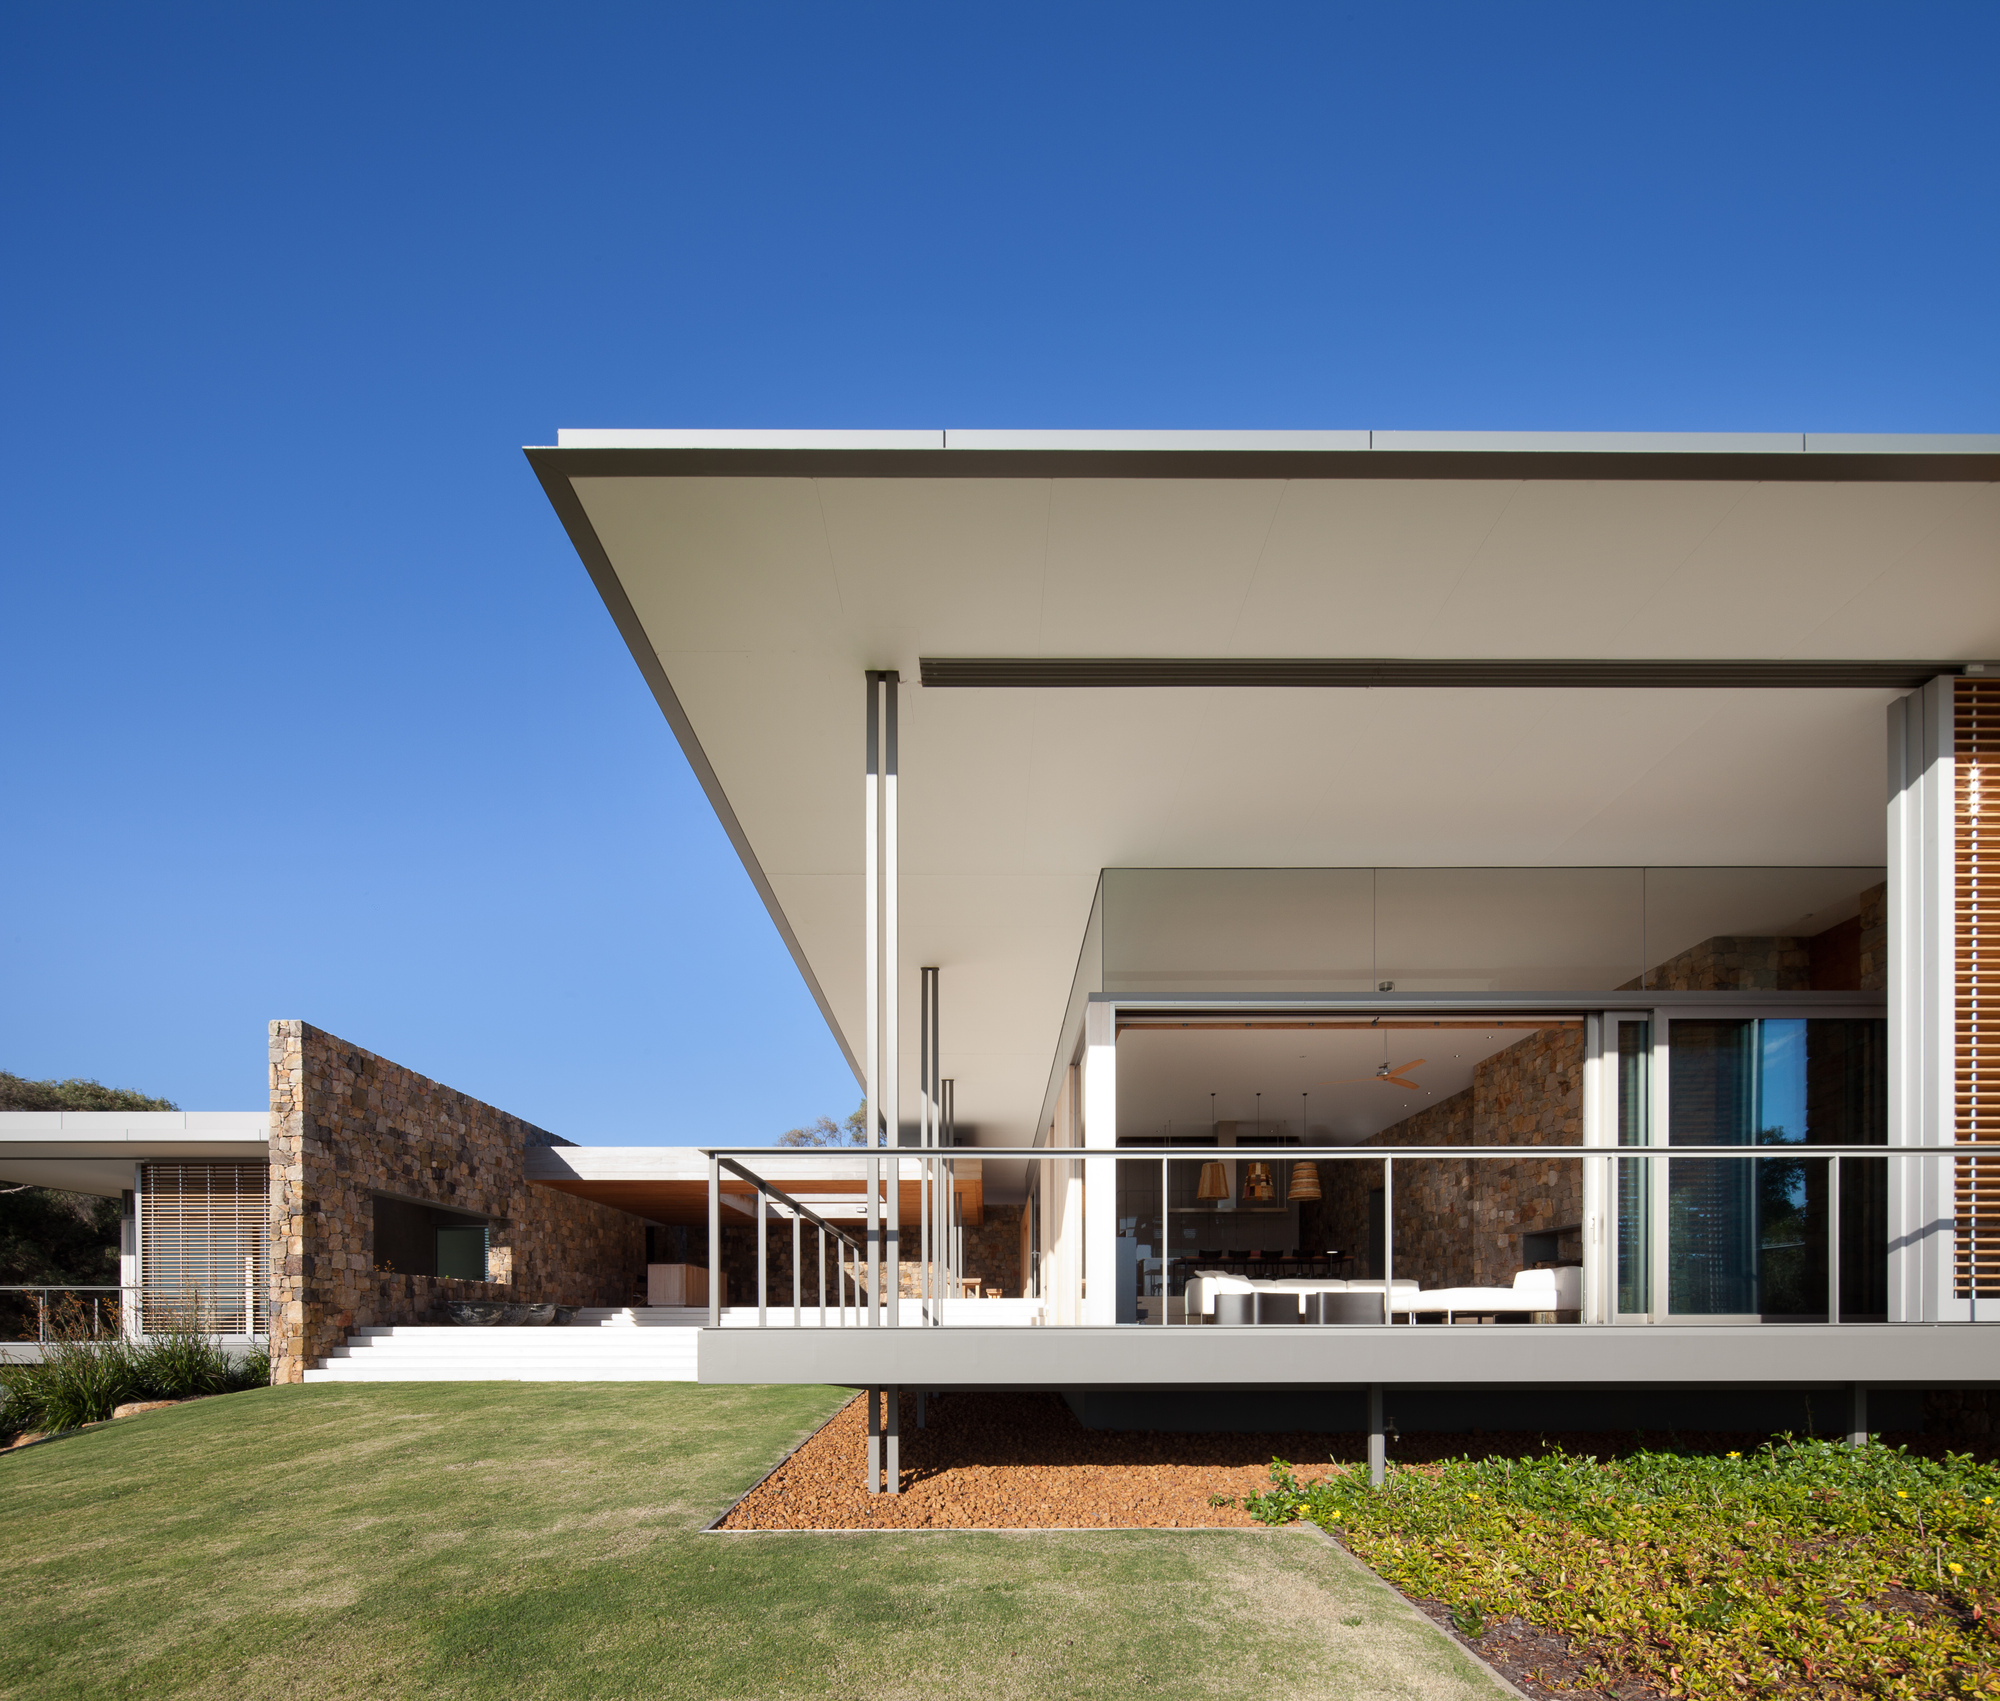 Landscaped House In South Western Australia By Tierra Design